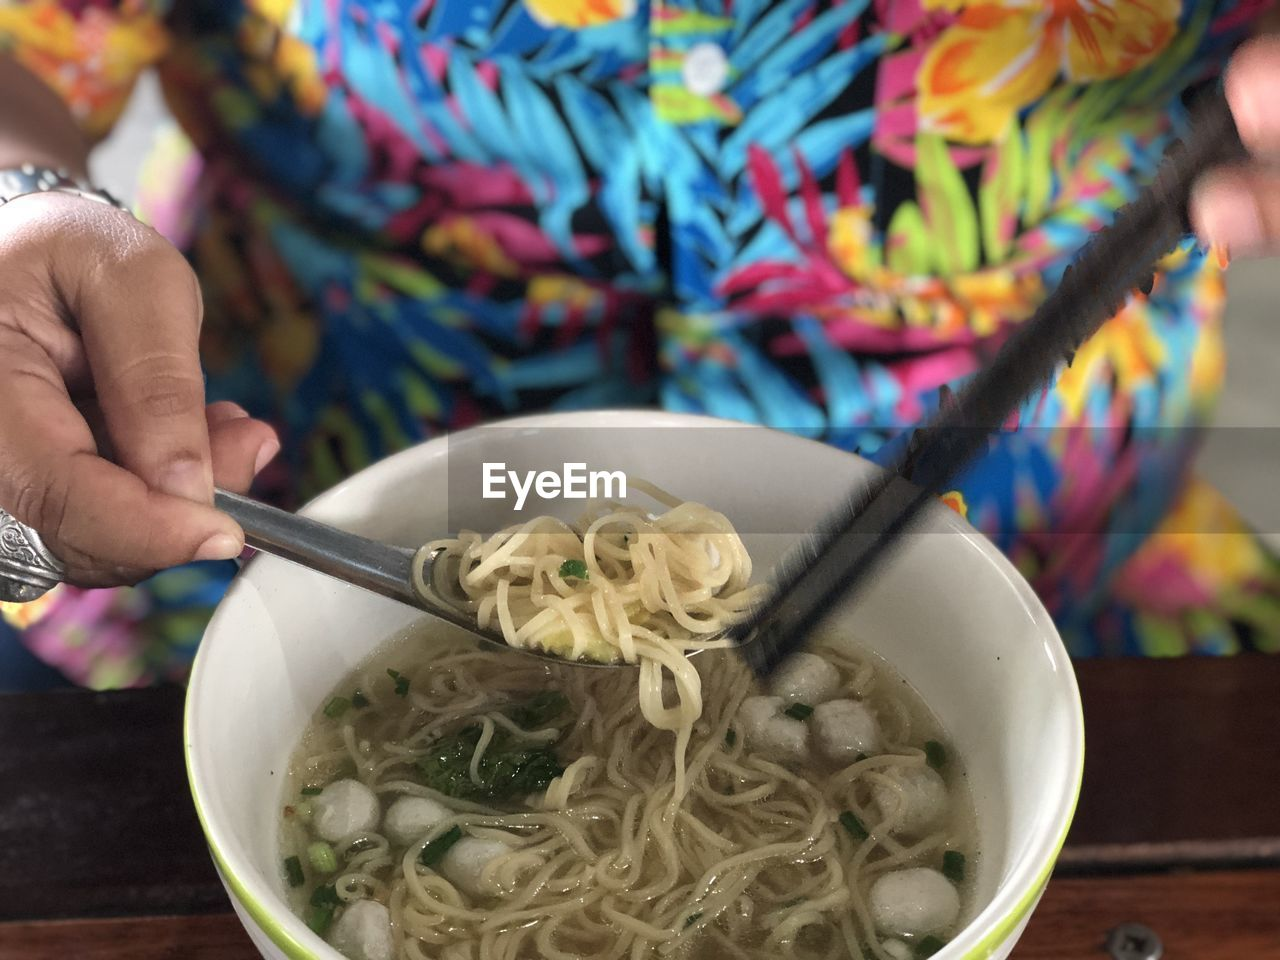 human hand, food, food and drink, hand, holding, human body part, bowl, real people, pasta, one person, freshness, kitchen utensil, italian food, spoon, healthy eating, eating utensil, indoors, table, unrecognizable person, wellbeing, body part, finger, noodle soup, spaghetti, mixing